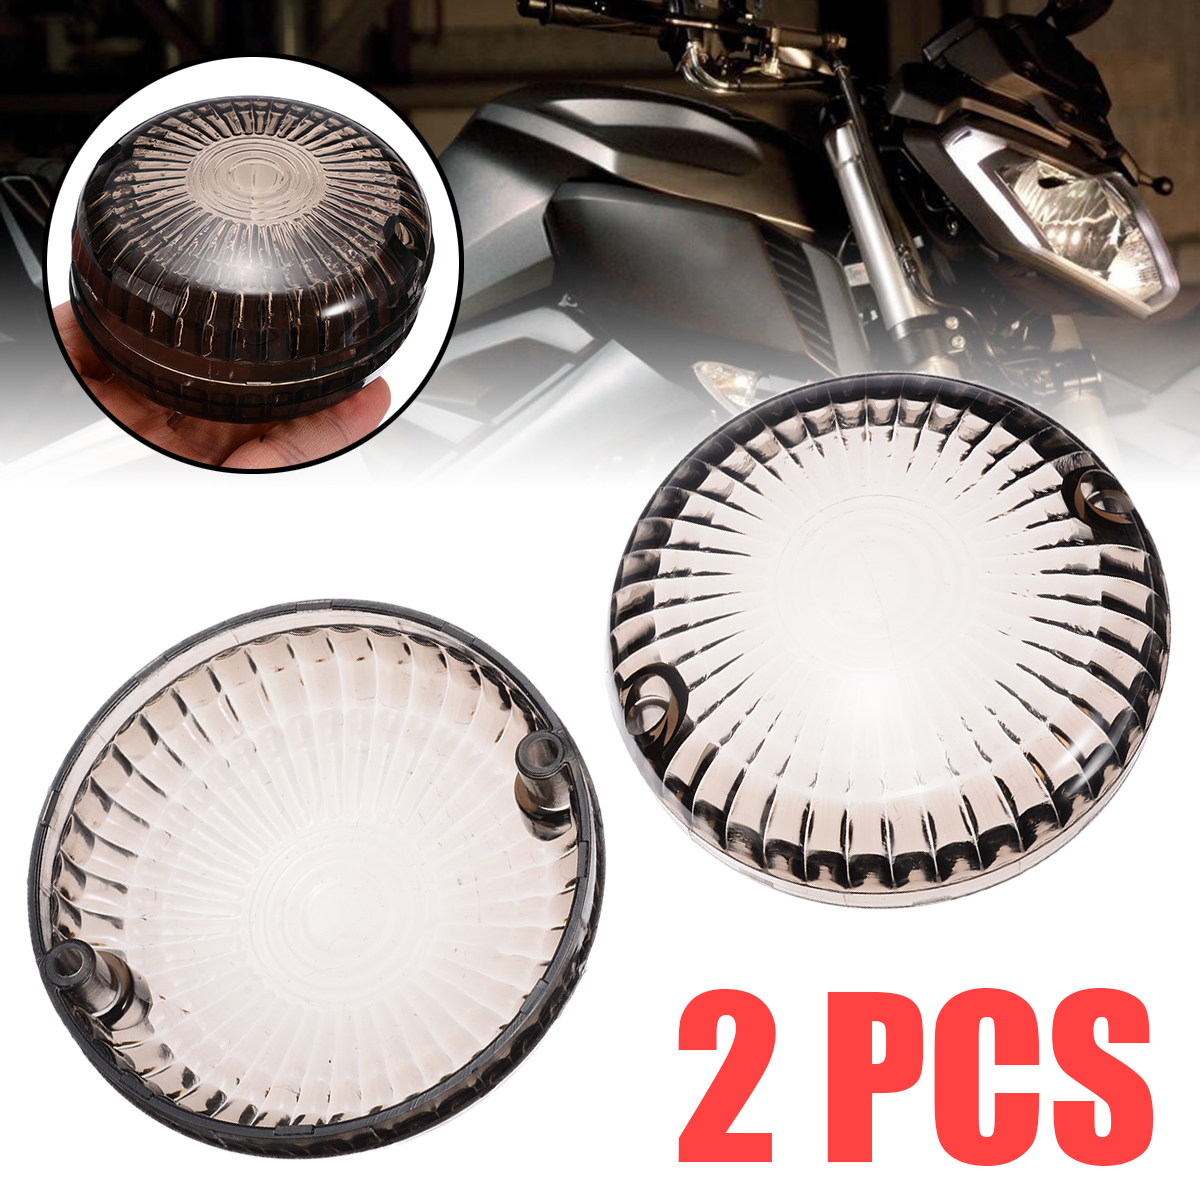 Mayitr 2Pcs Motorcycle Smoke Turn Signal Light Indicator Lens Cover For Yamaha V-Star 1100 Silverado 650 Road Star V-Max